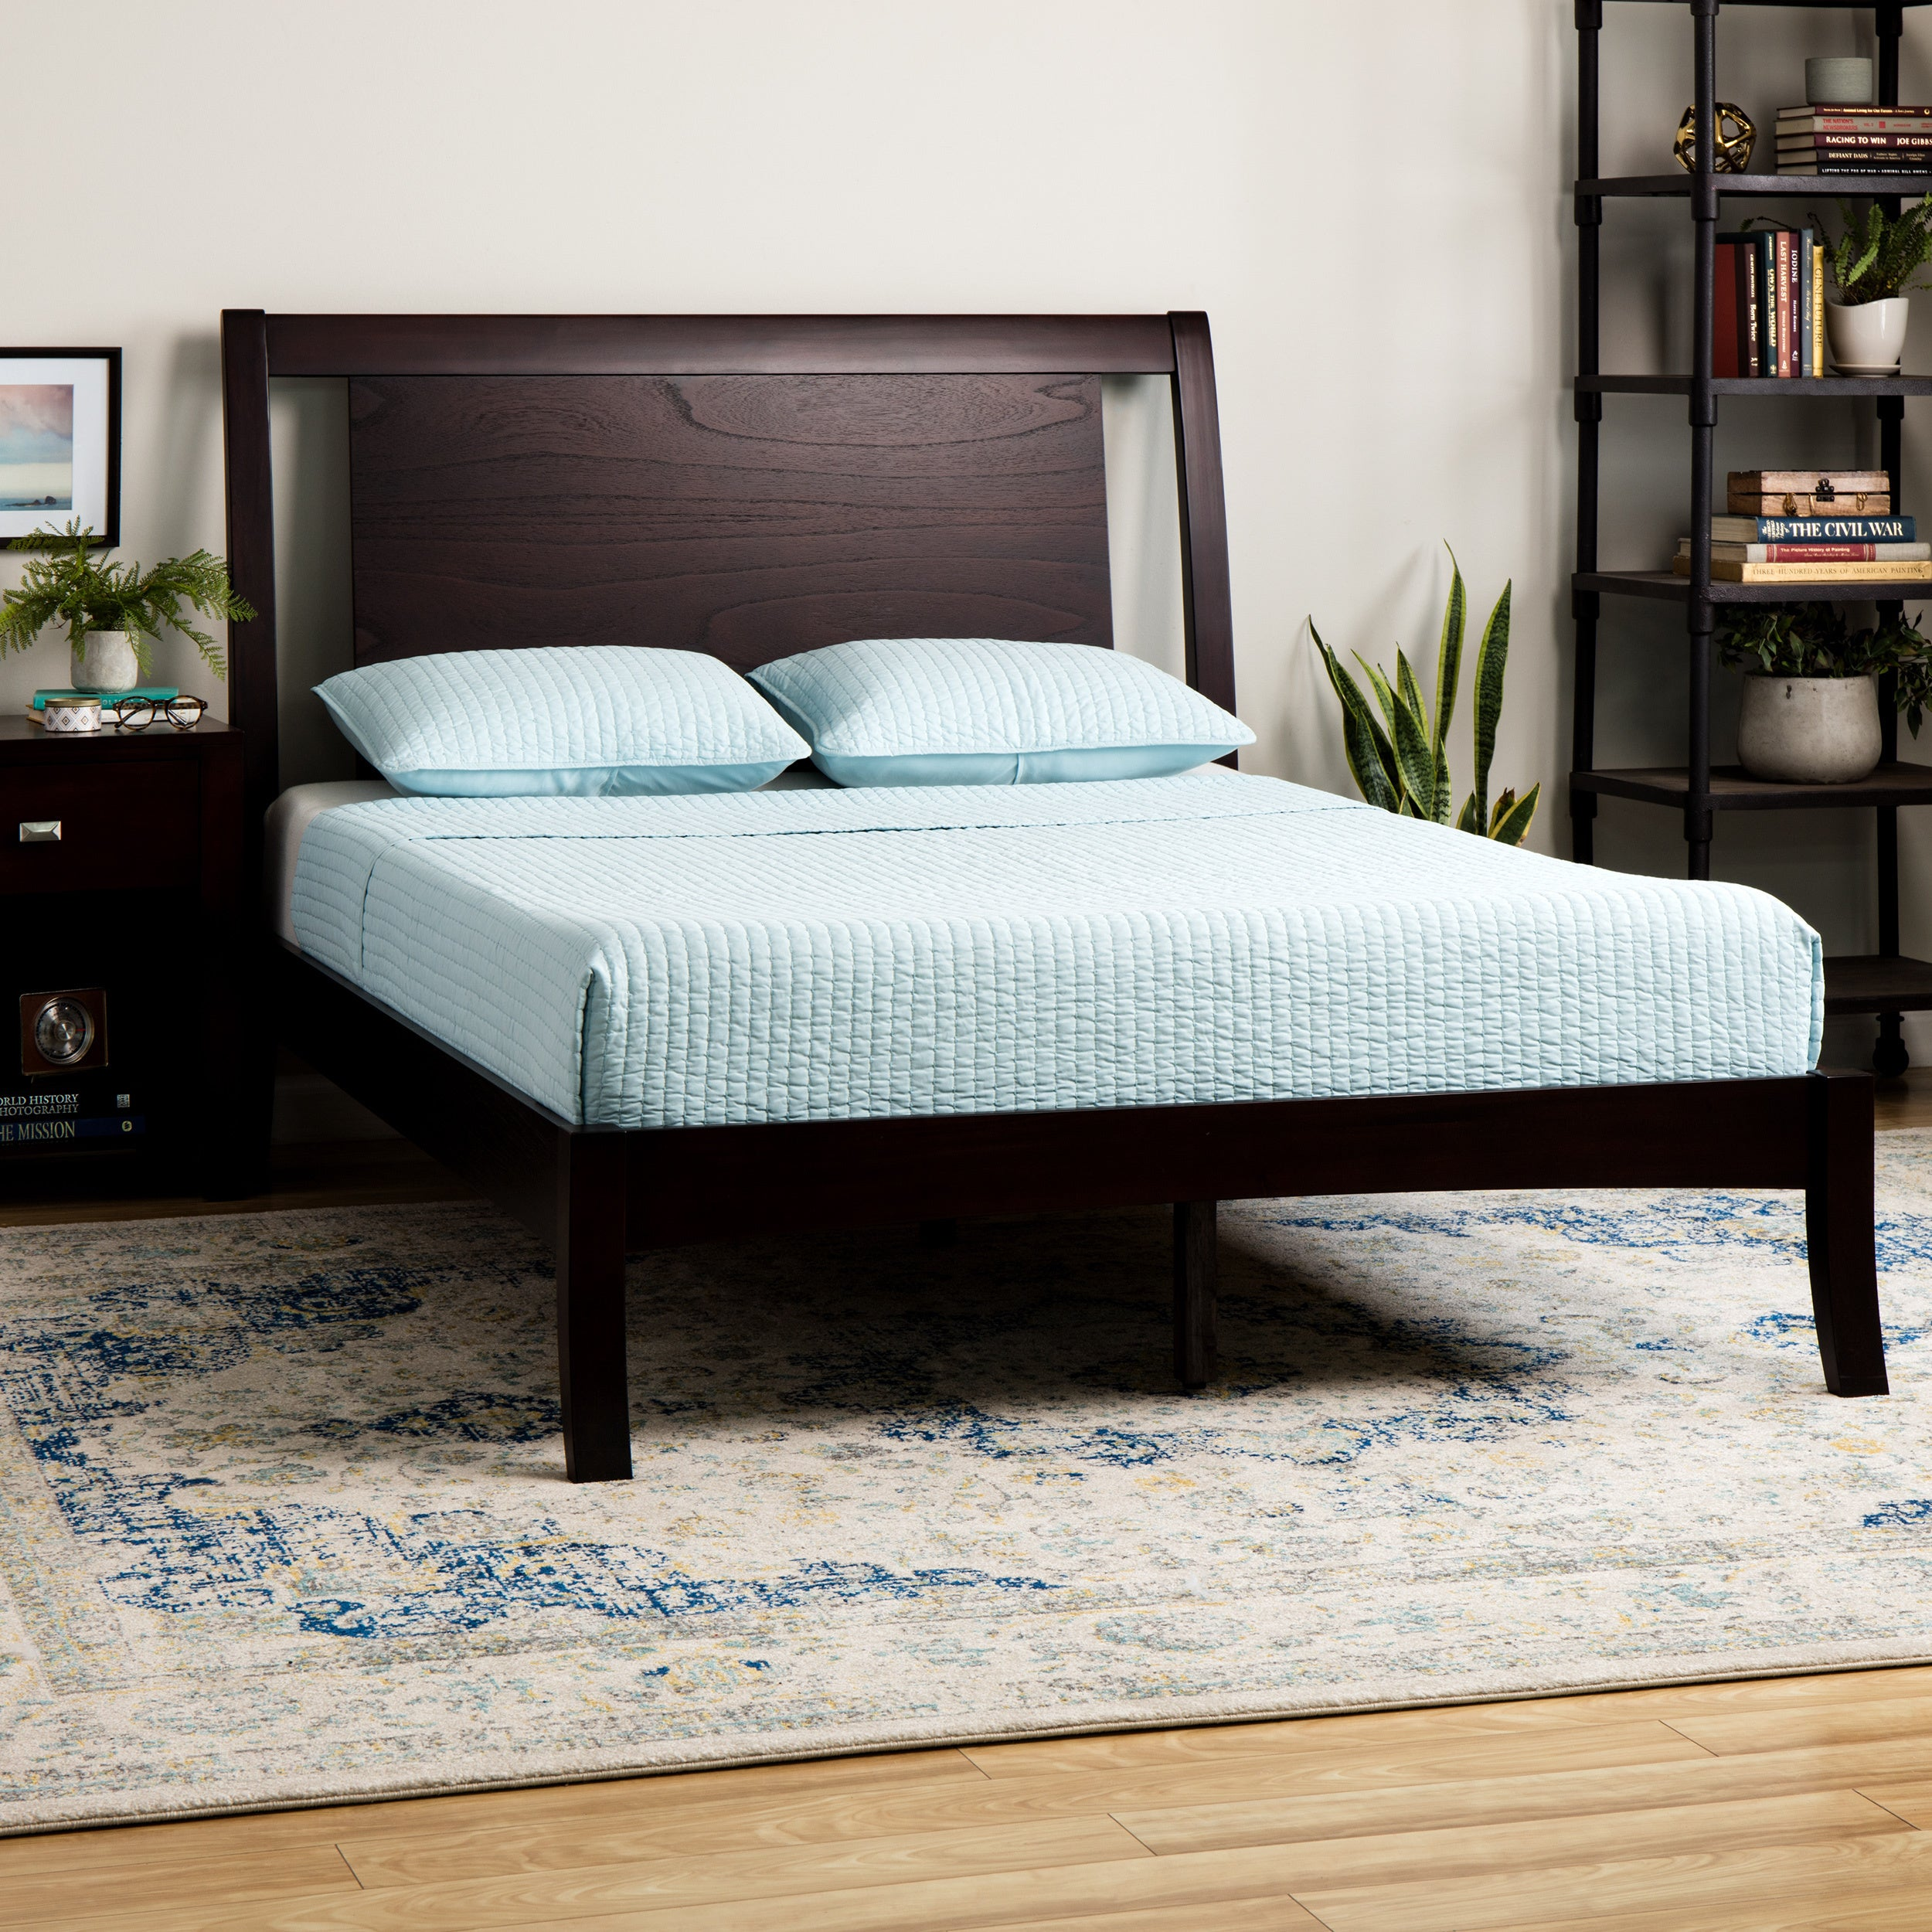 - Shop Floating Panel Queen-size Sleigh Bed - Overstock - 1151046